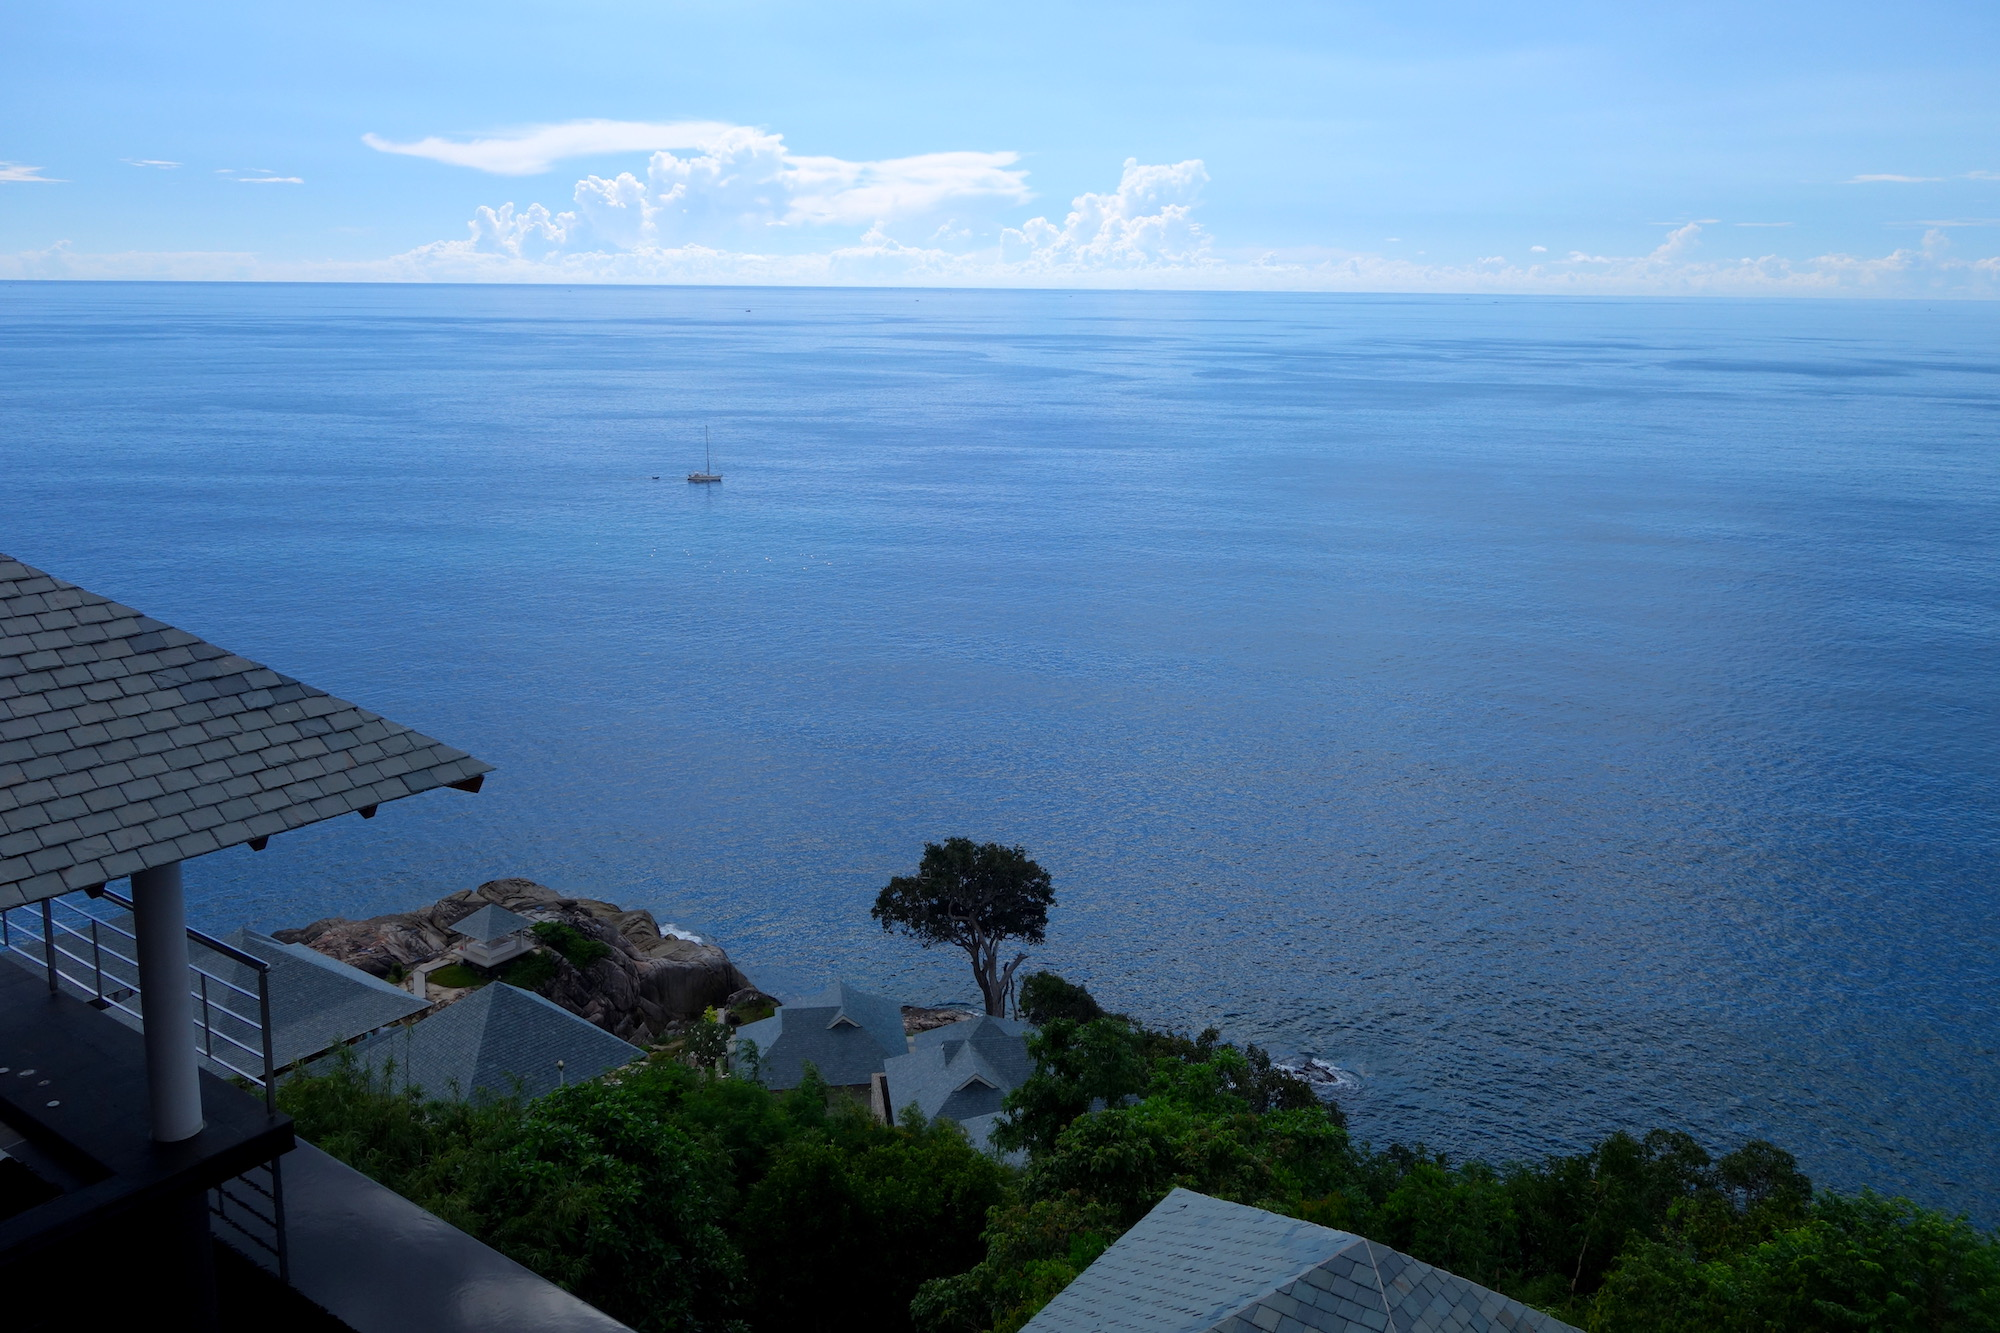 Baan Paa Talee – Staying on the Edge of the World